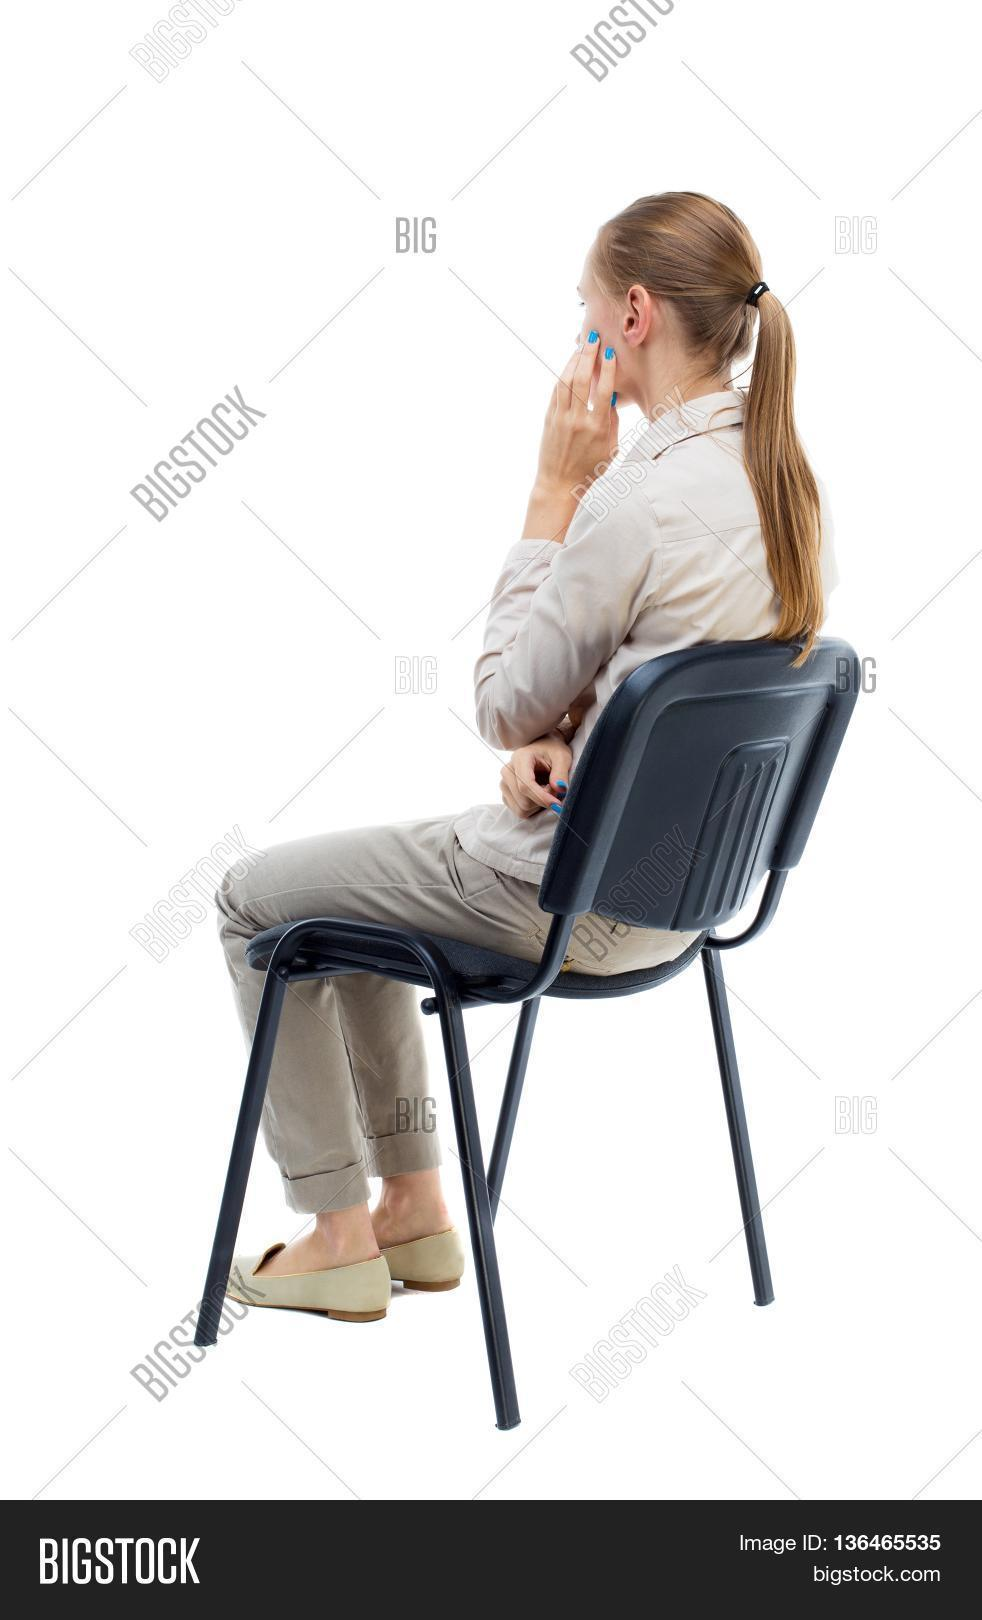 Peachy Back View Young Image Photo Free Trial Bigstock Caraccident5 Cool Chair Designs And Ideas Caraccident5Info